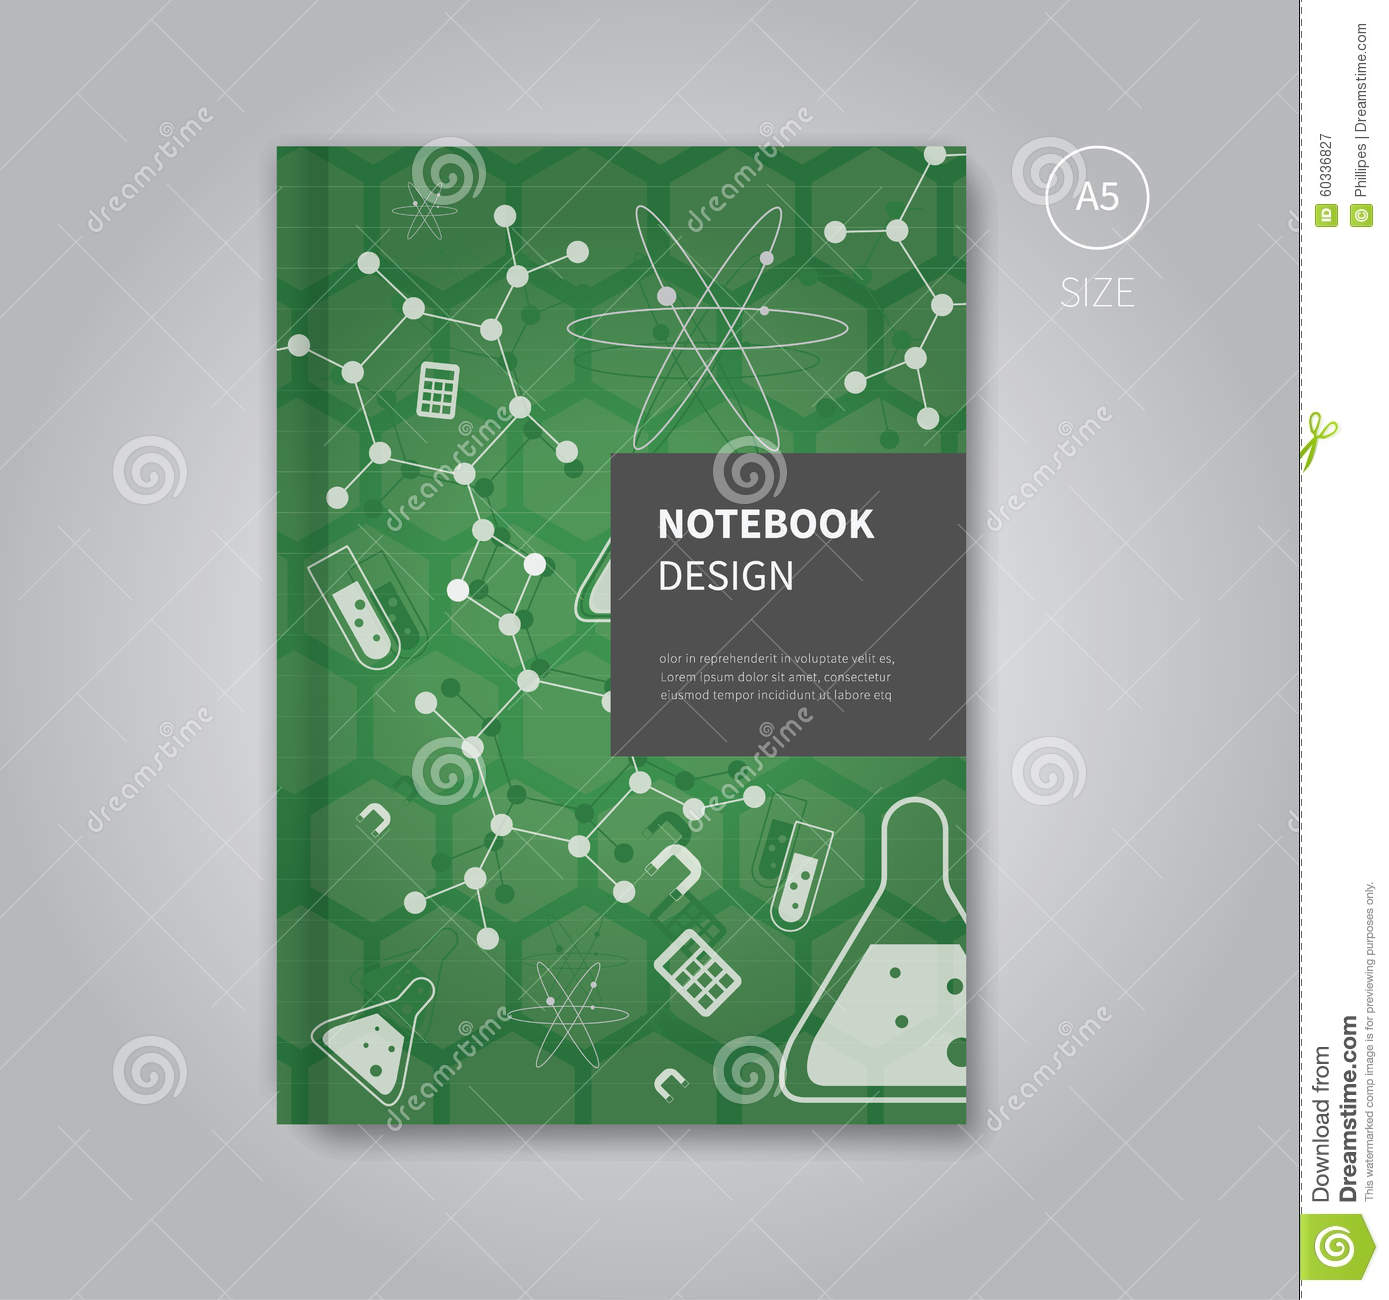 Cover page designs for school projects note book cover page design - Notebook Design In Mathematics Template Style Royalty Free Stock Photography